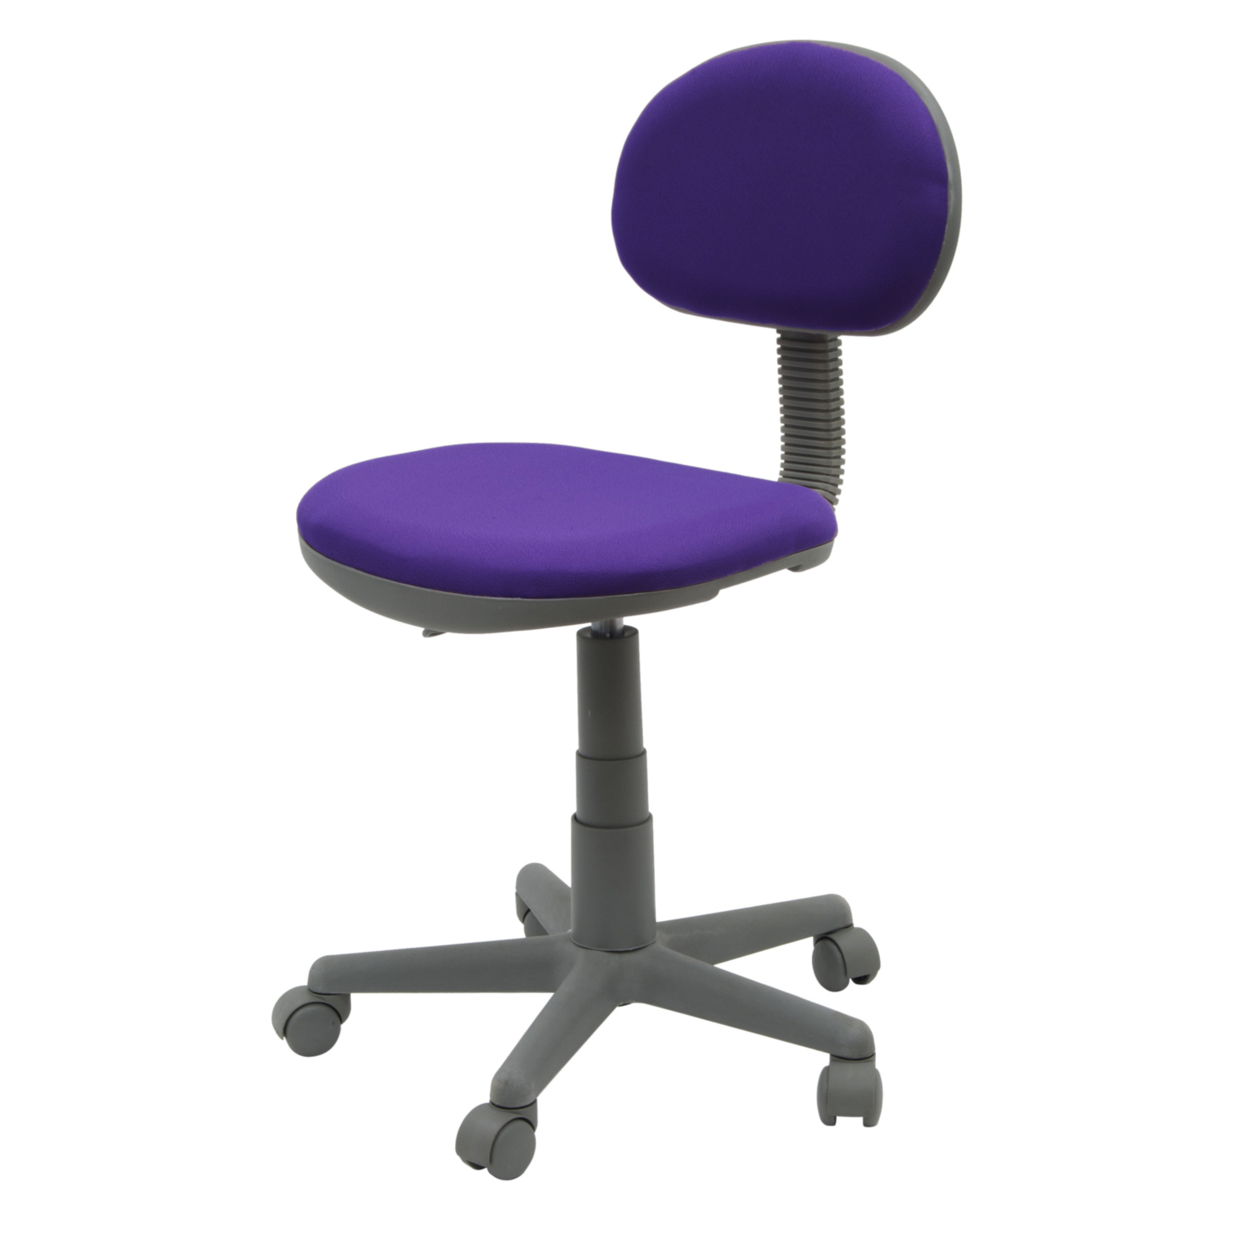 Offex Home Office Deluxe Task Chair - Purple/Gray